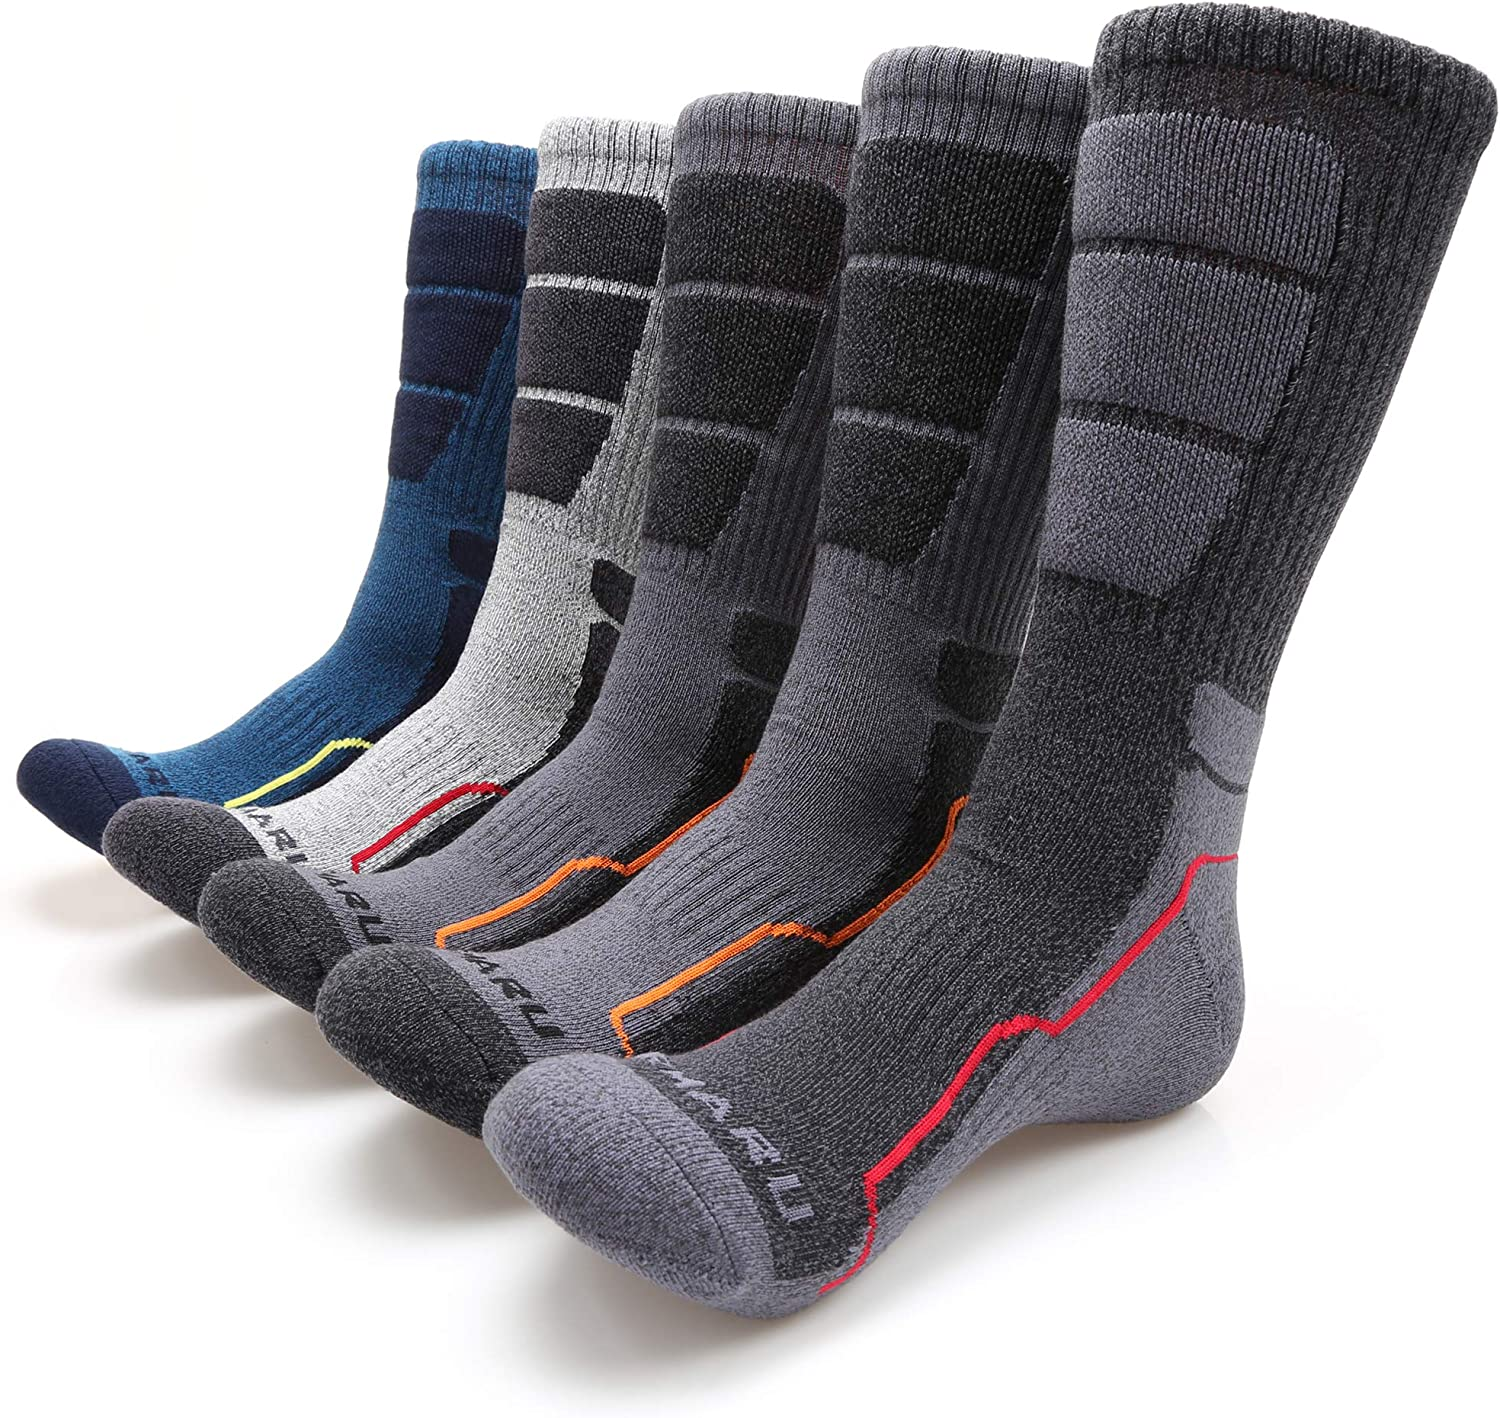 MIRMARU Cushion Crew Socks